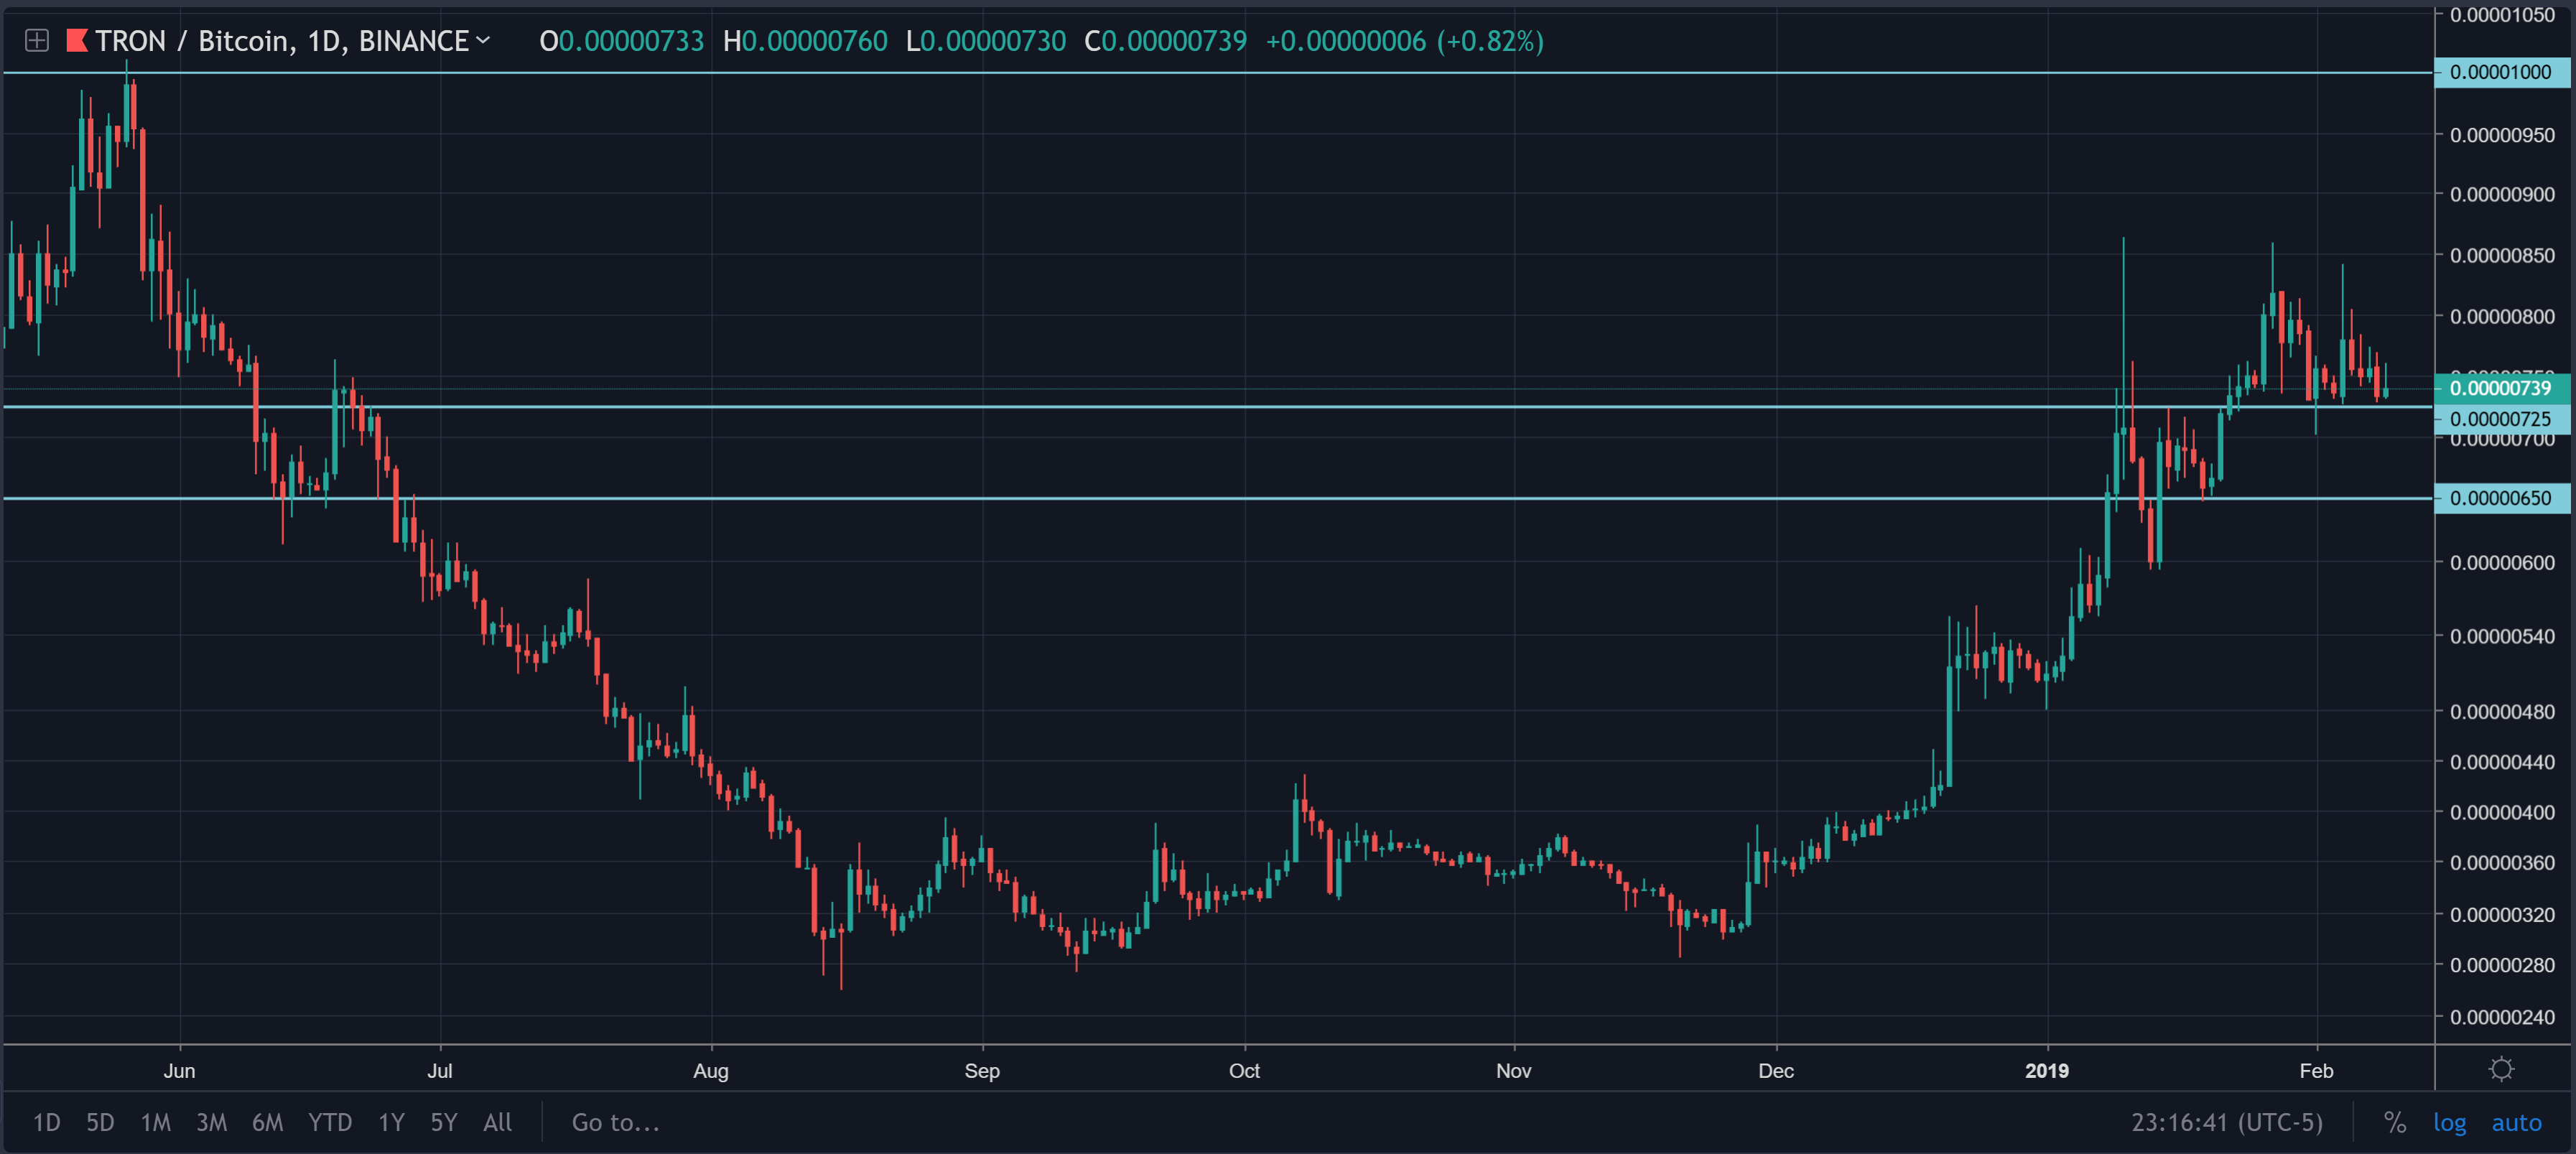 tron trx price daily